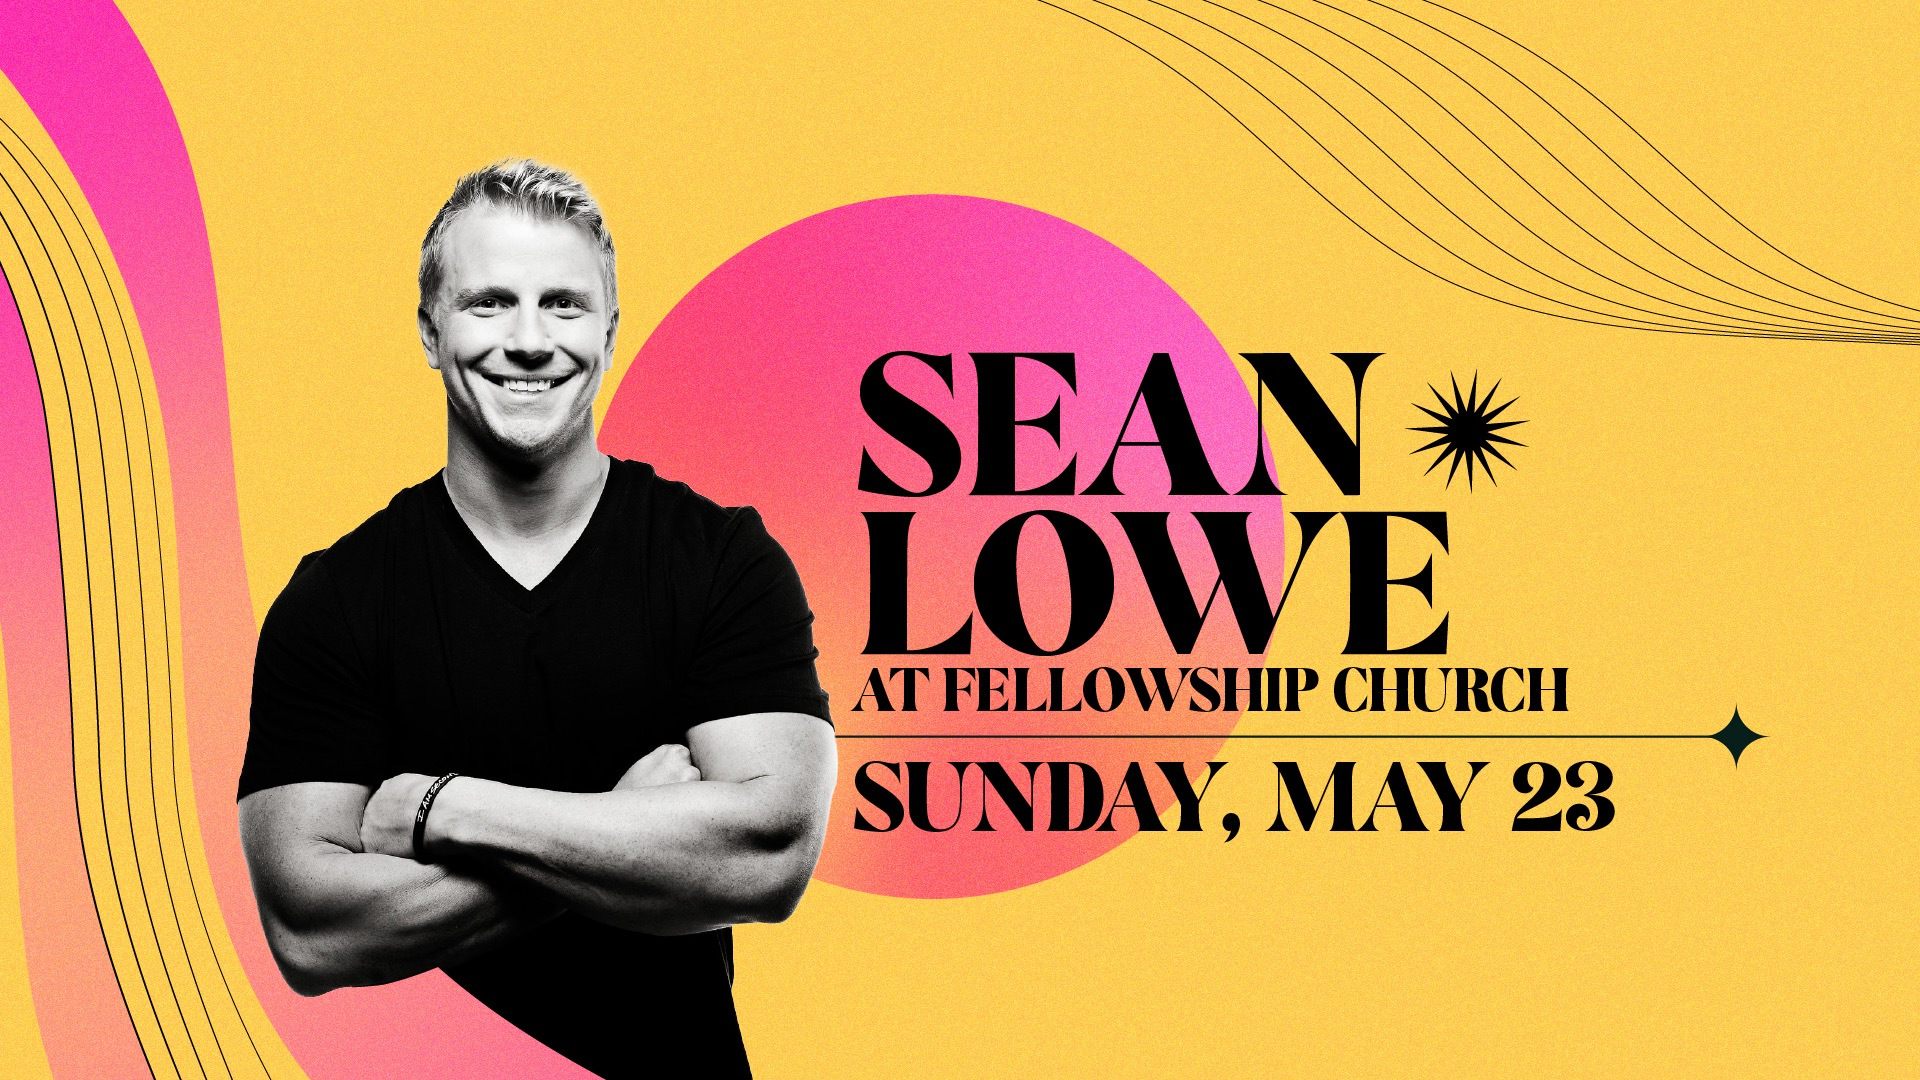 Special Guest Sean Lowe